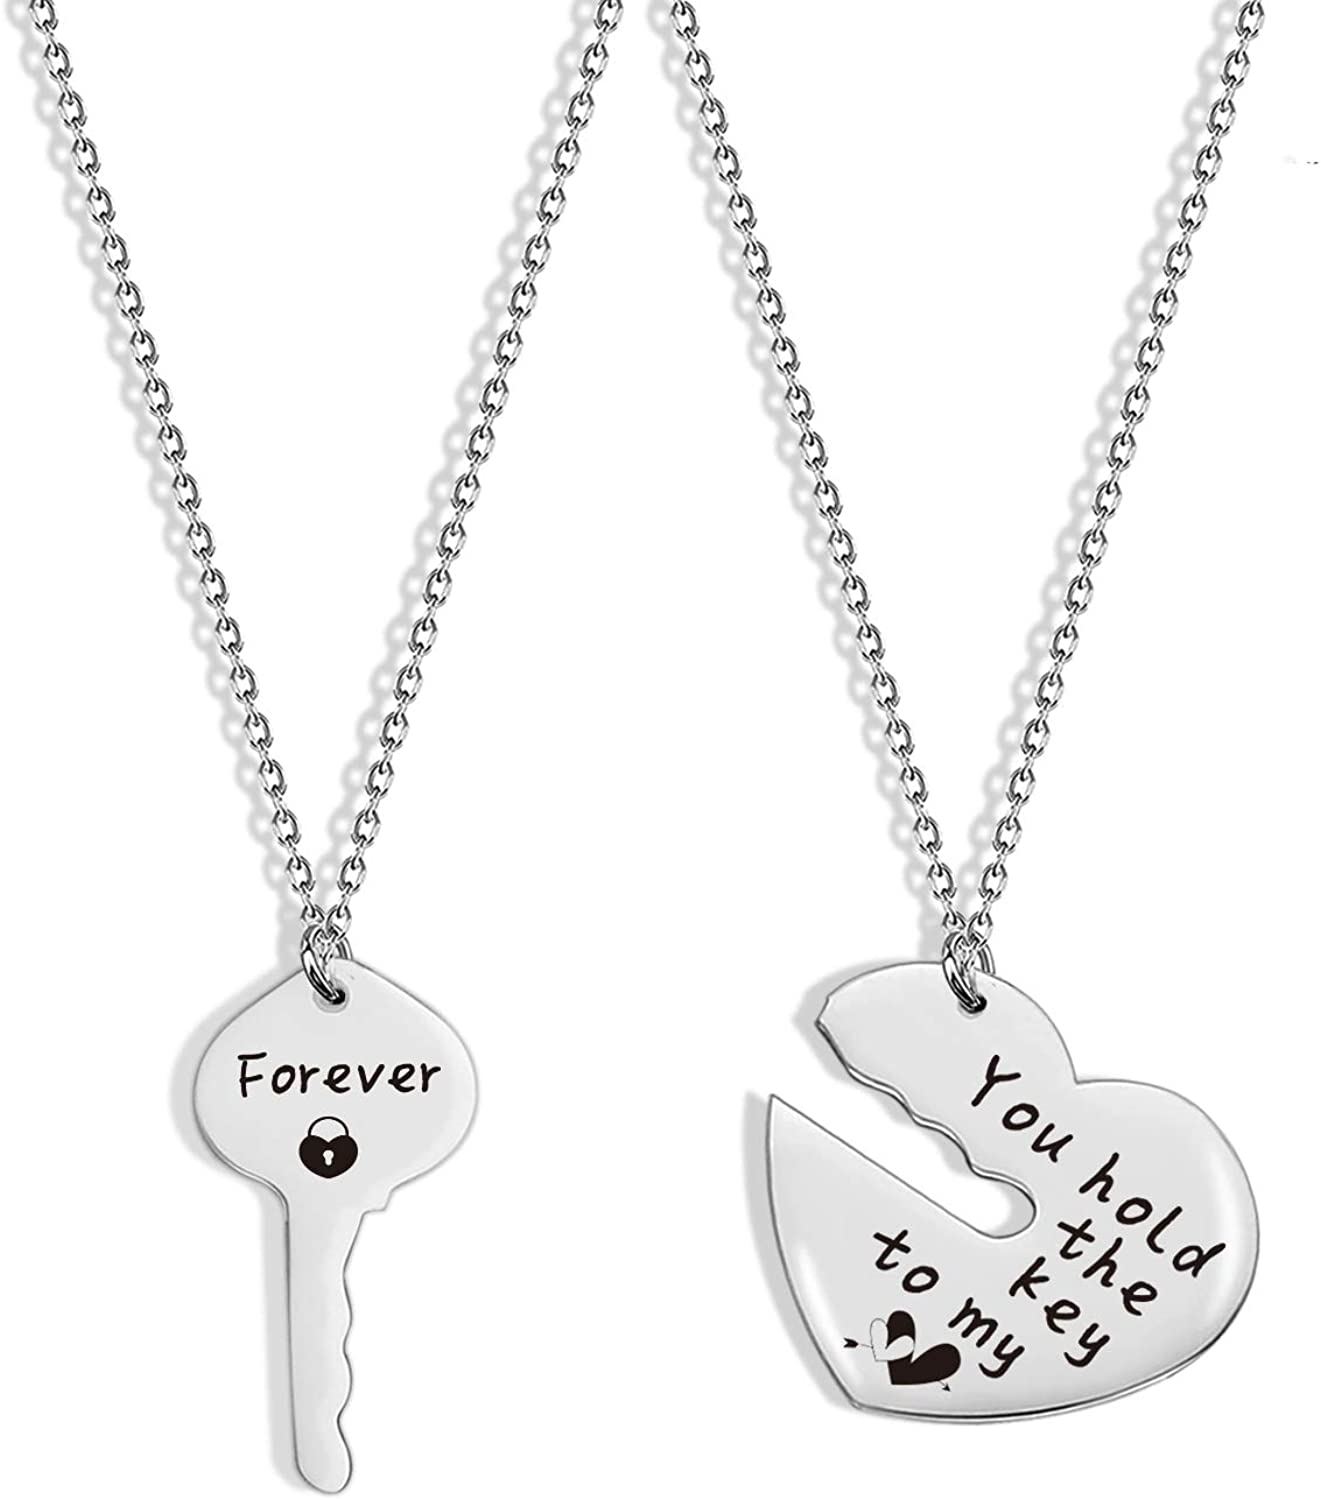 SIDIMELO Inspirational Gifts Couple Necklace Birthday Gifts for Boyfriend Girlfriend Gift for Valentine's Day Birthday Gifts Couple Gifts Husband Wife Necklace